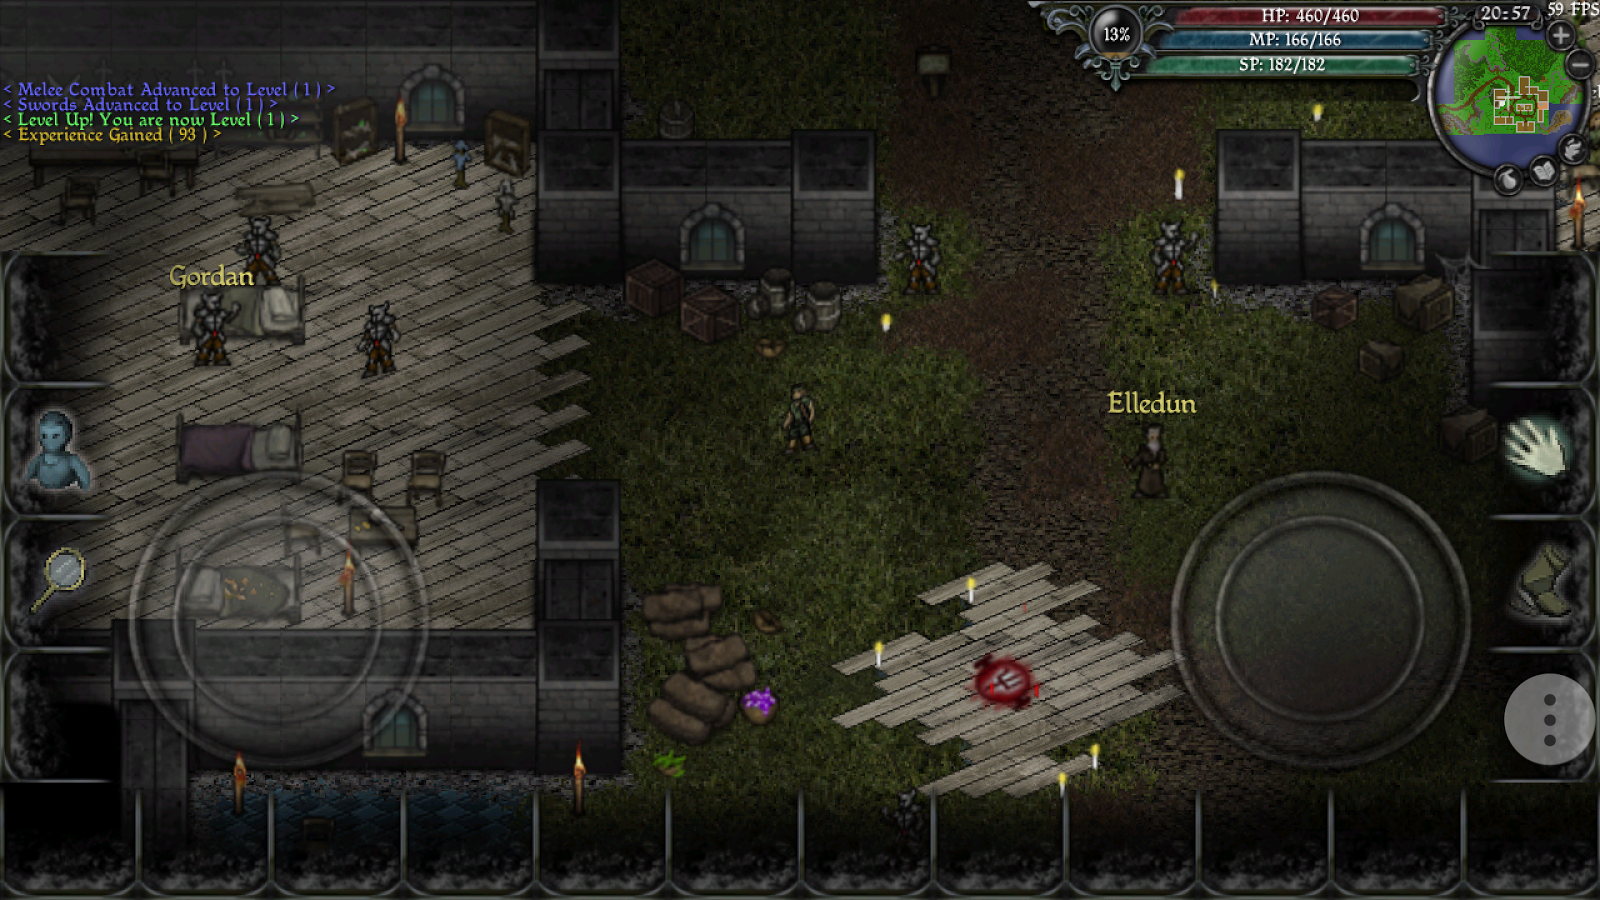 Free Download 9th Dawn II 2 RPG, Gratis Android Game